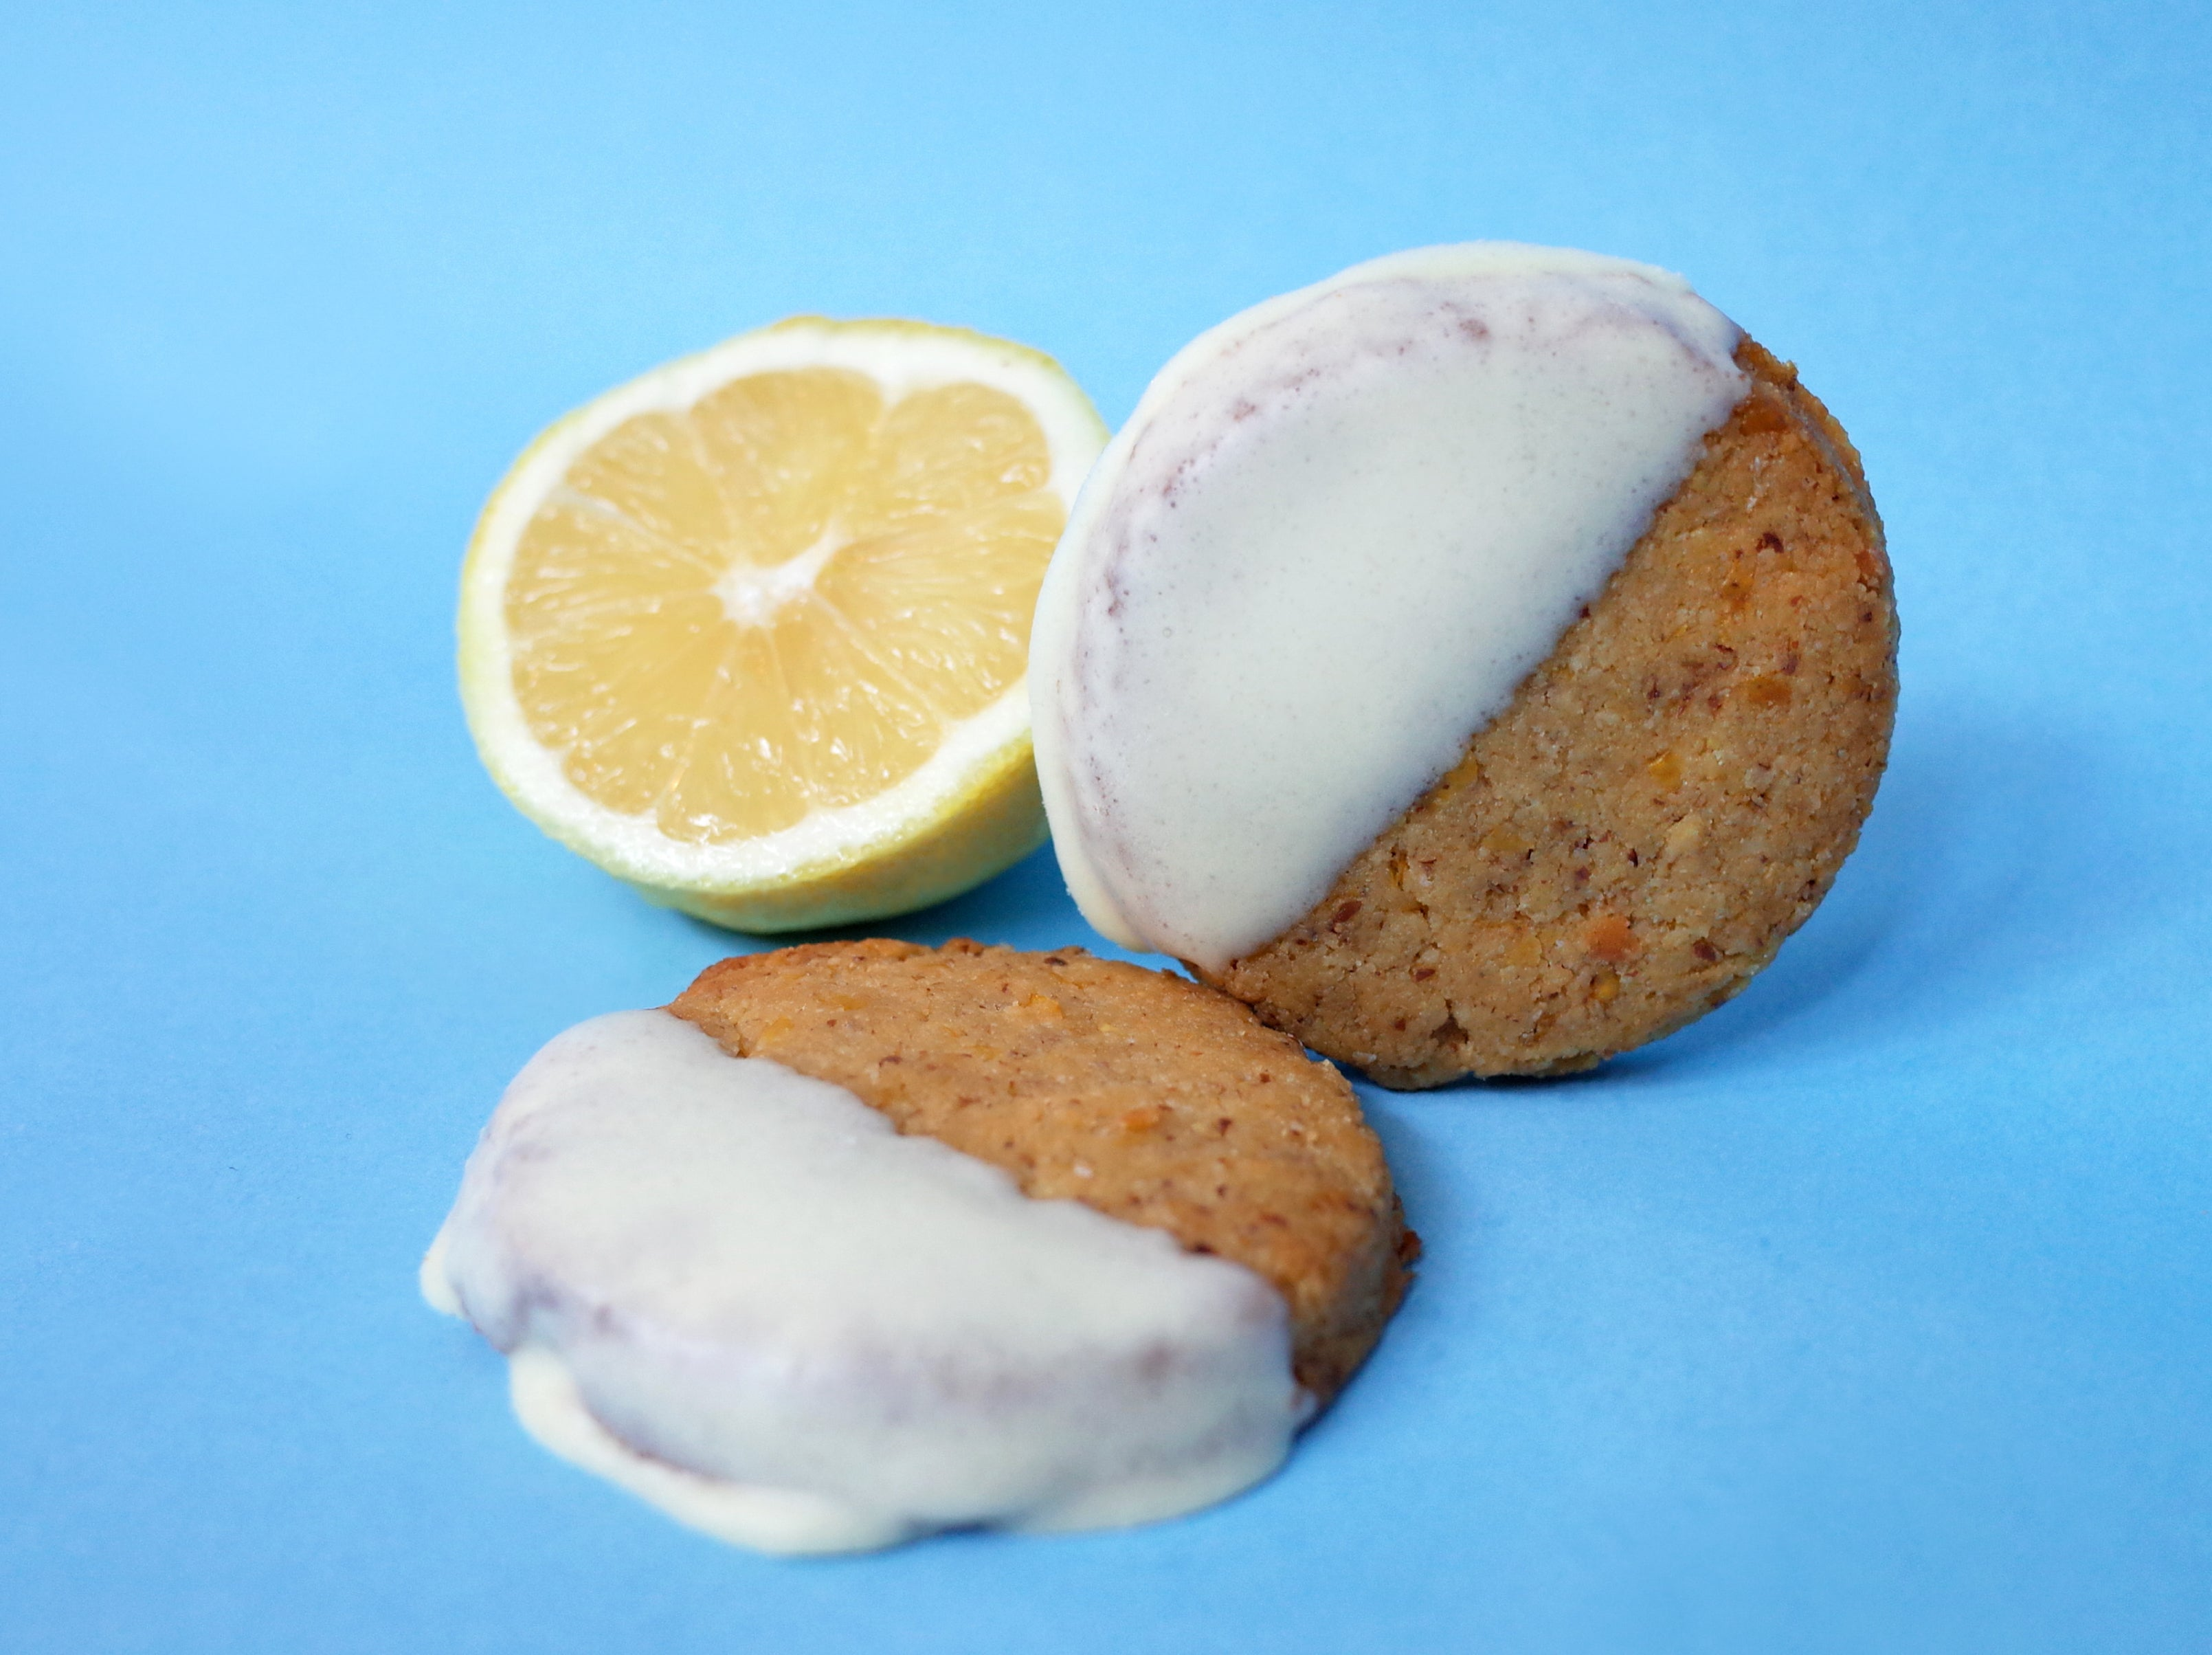 Lemon Moon cookie 2-pack